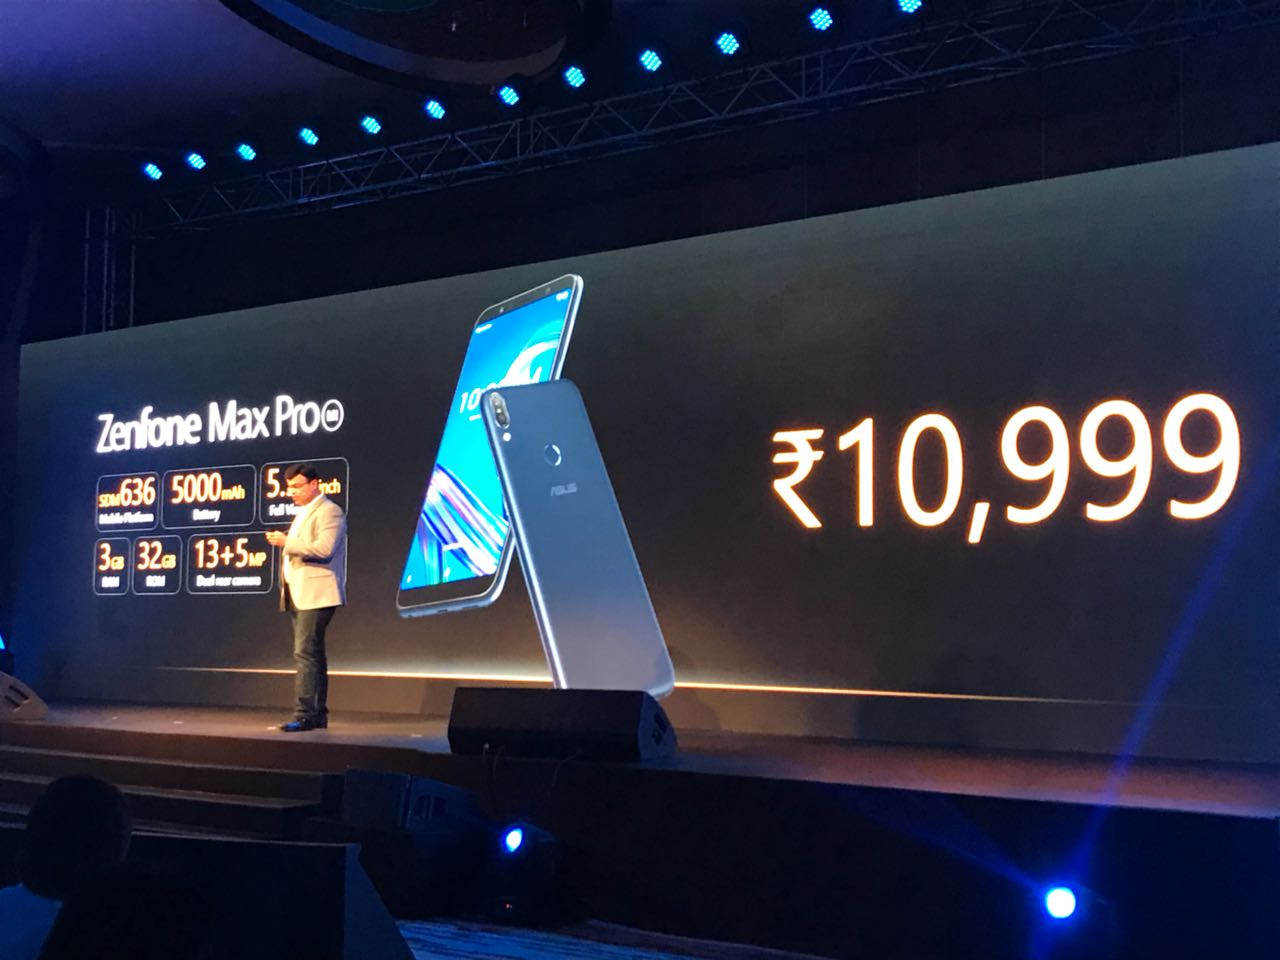 Asus Zenfone Max Pro M1 launched in India with Snapdragon 636